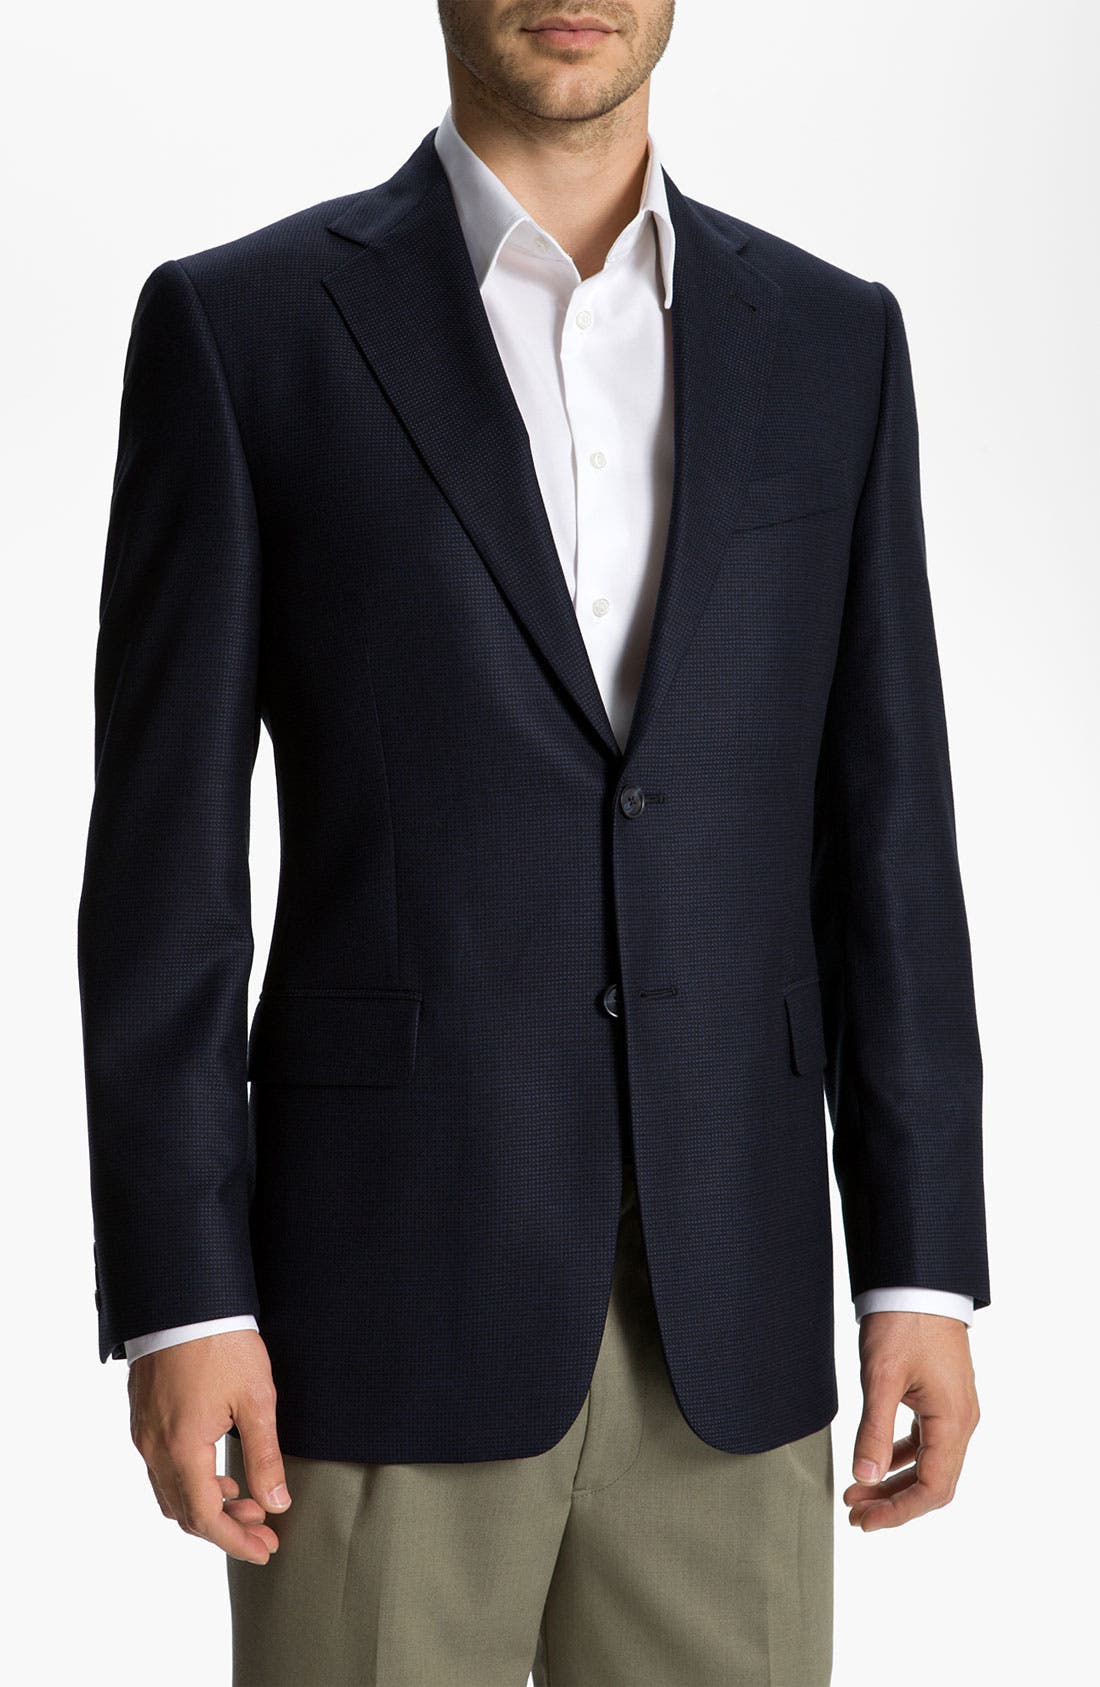 Main Image - Joseph Abboud 'Signature Silver' Houndstooth Blazer